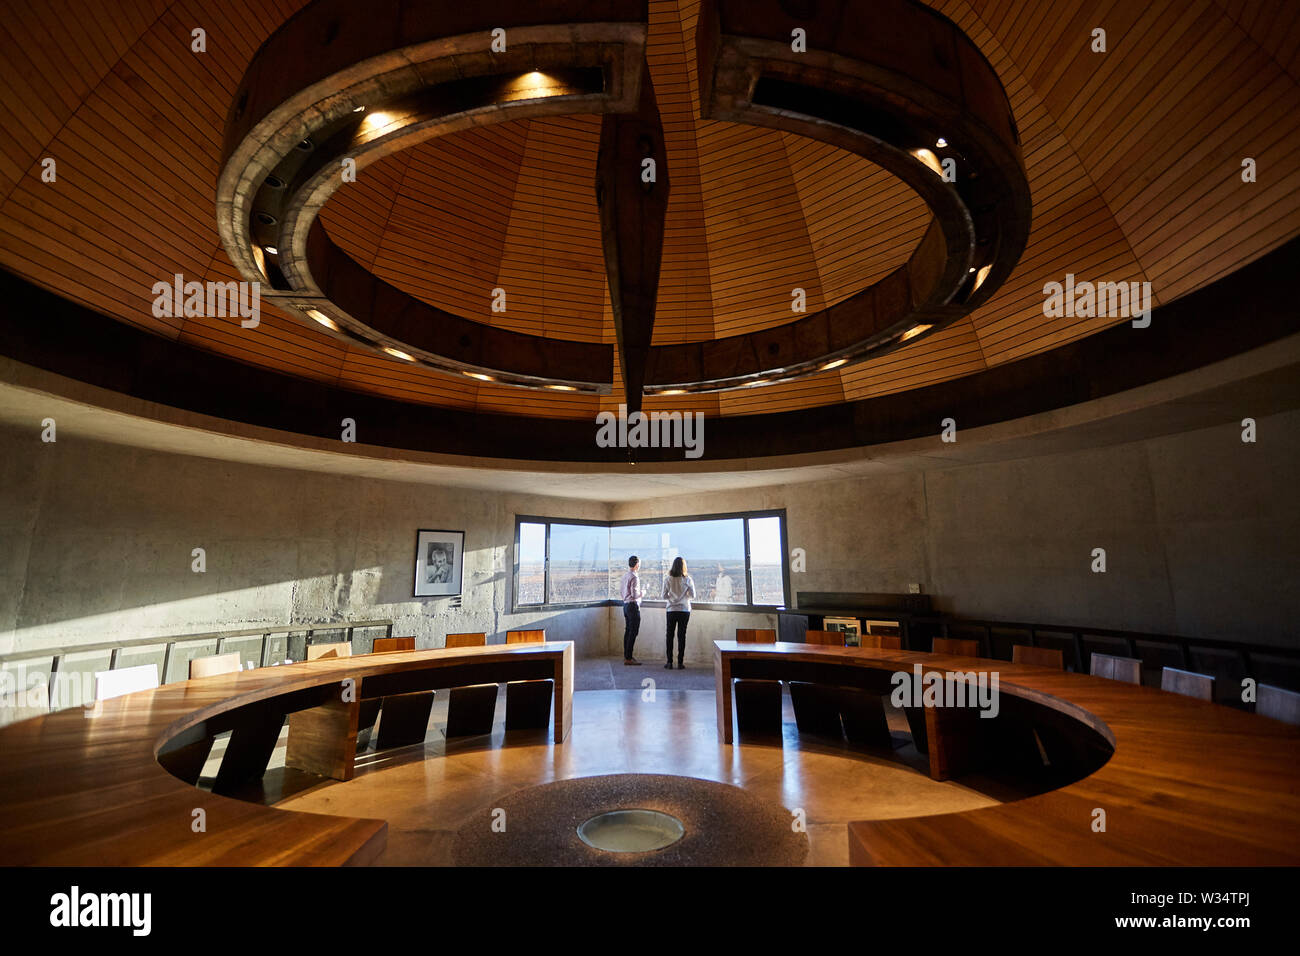 11 July 2019, Argentina, San Carlos: Two visitors look out of the window of a meeting room in the Piedra Infinita building. The Argentinian winery Piedra Infinita of the brand Zuccardi, was awarded by the World's Best Vineyards Academy as the best winery and winery in the world. This award recognizes the best 50 wineries in the world, based on the experience offered to the visitor. Photo: Marcelo Aguilar/dpa - Stock Image